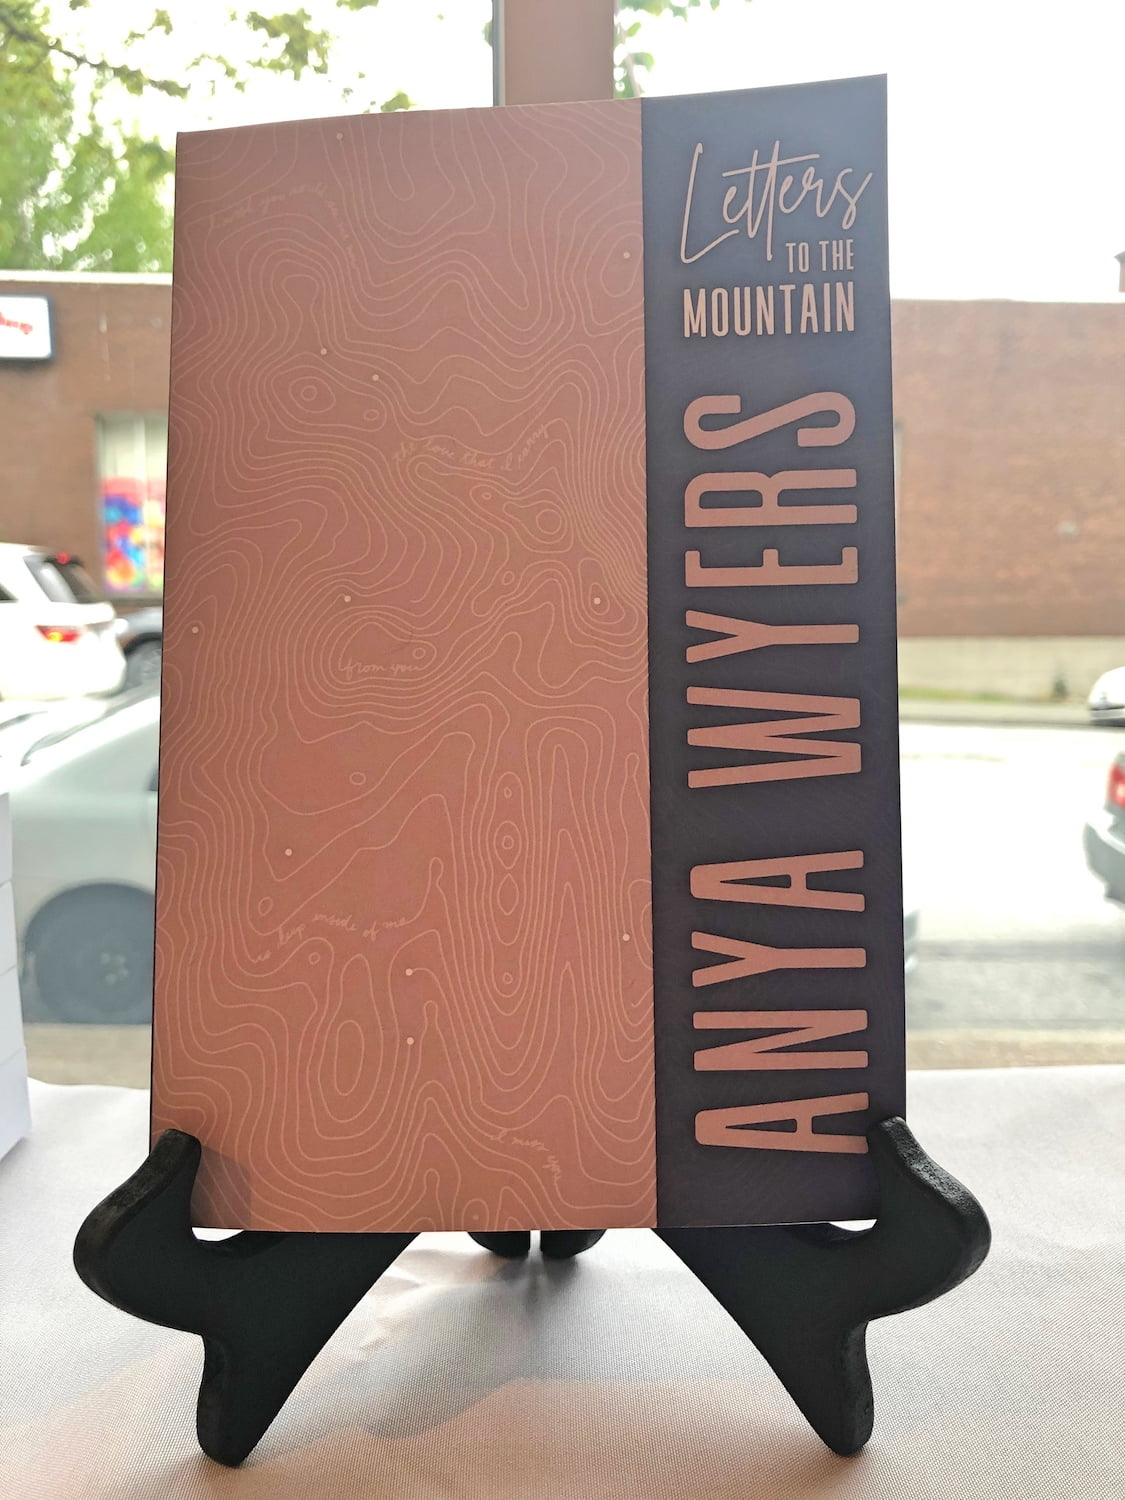 Letters to the Mountain Book Cover on Display